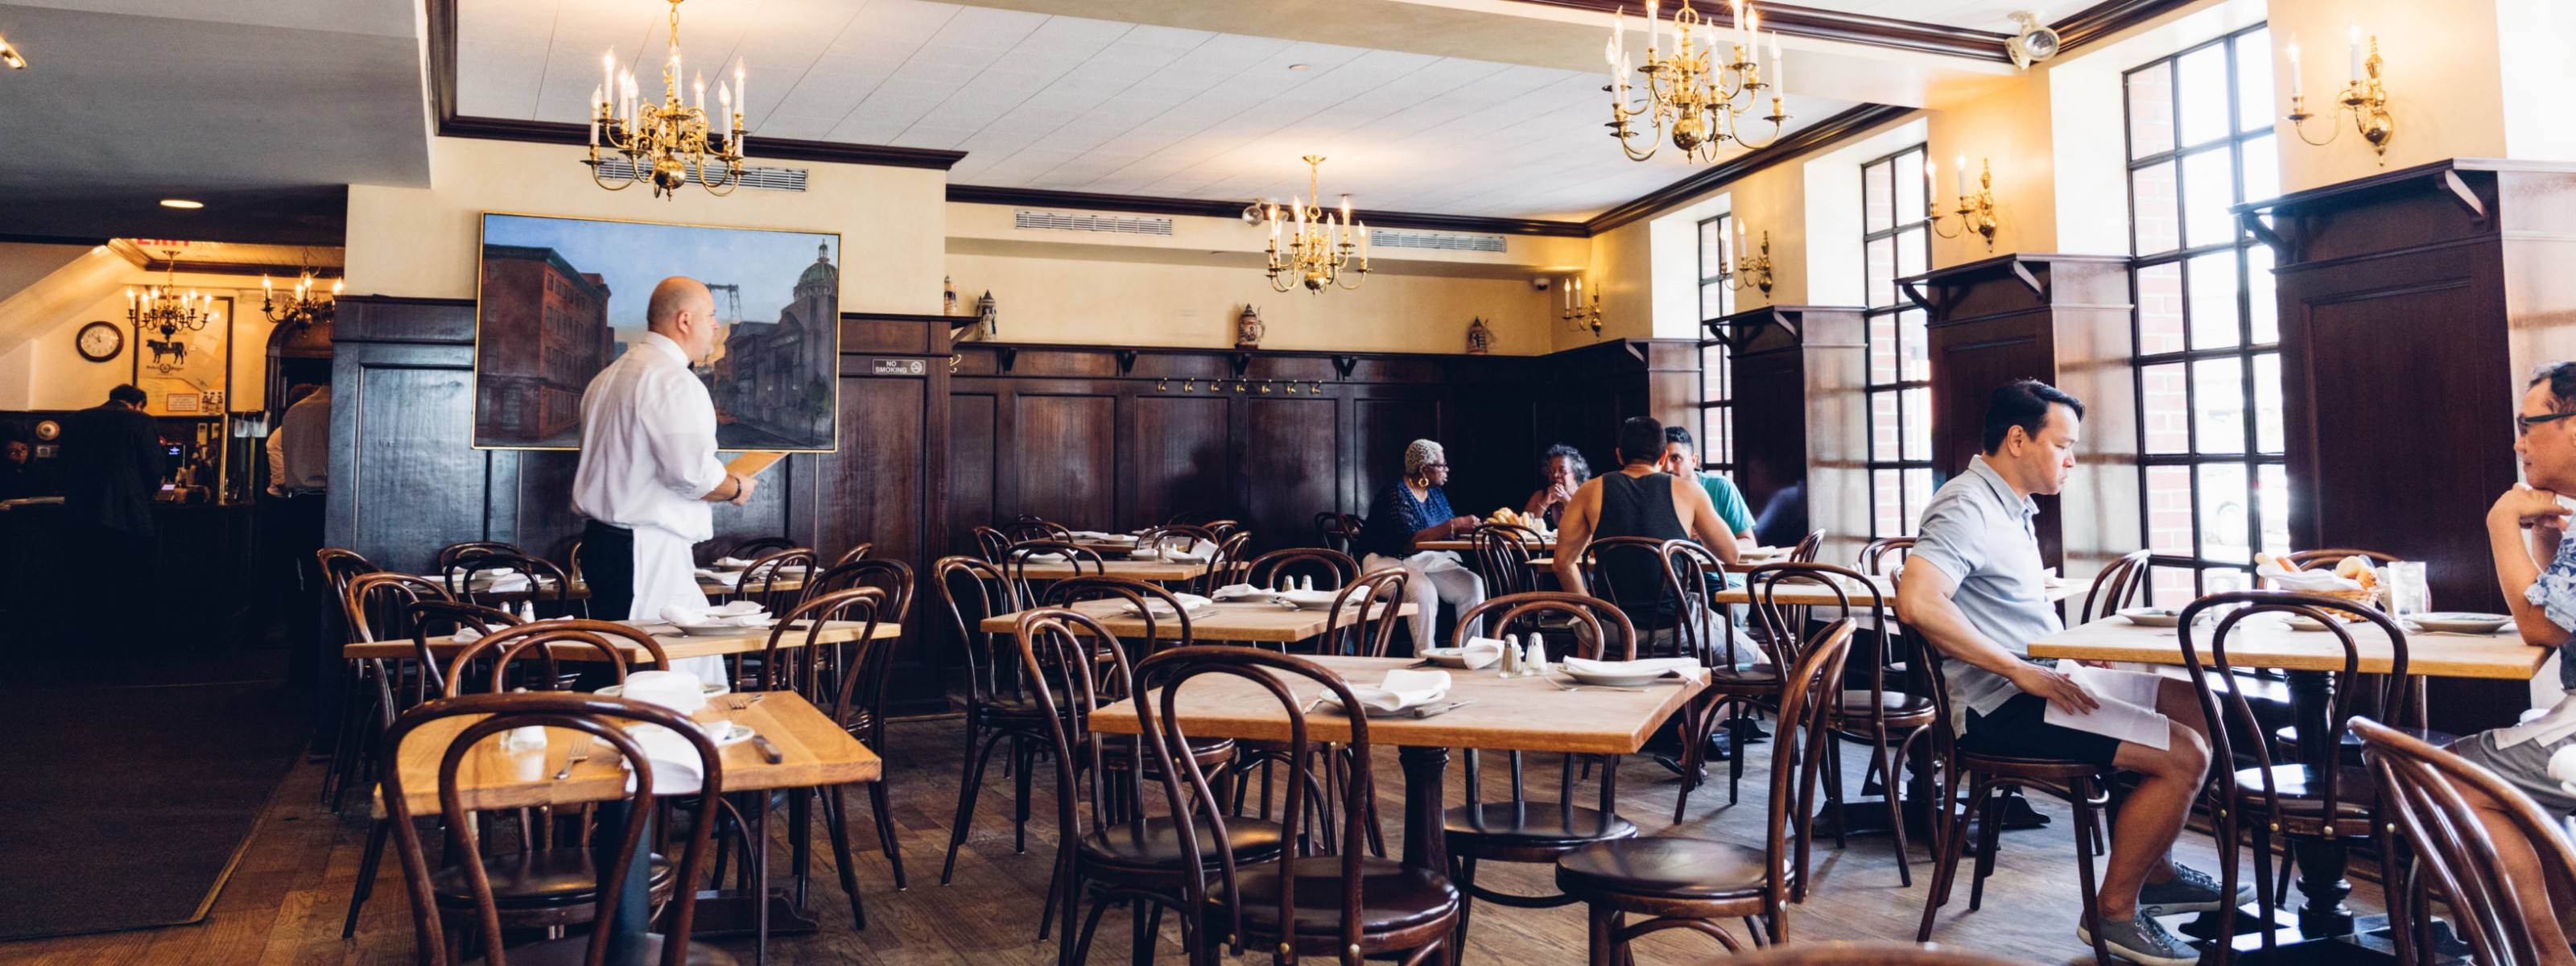 Peter Luger Steak House Williamsburg New York The